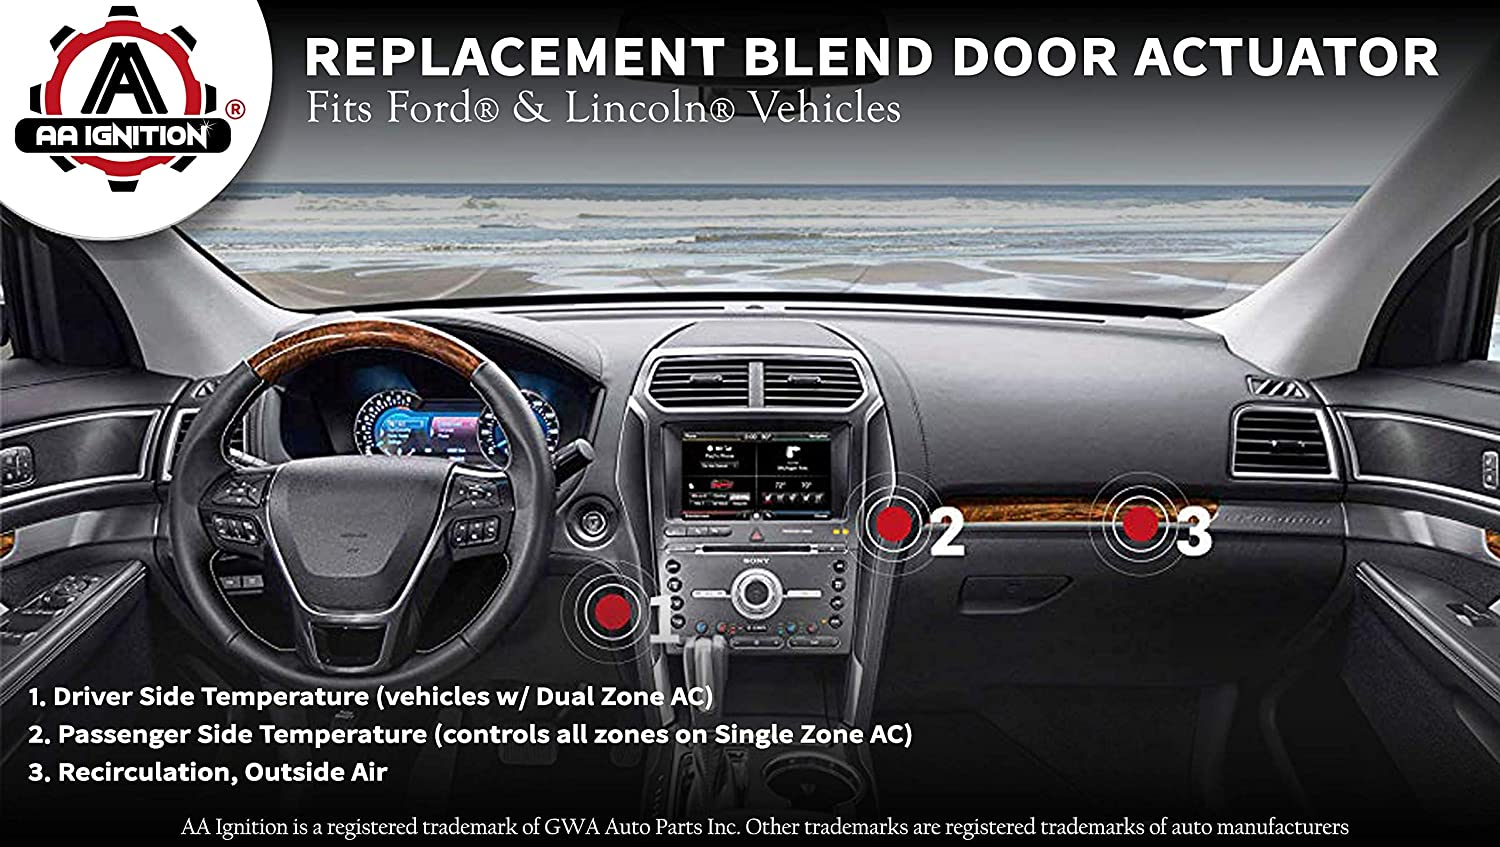 Blend Door Actuator - Replaces AA5Z-19E616-C, YH-1779, 604-234 - Fits Ford  Explorer 2011-2017, Ford Taurus 2008-2017, Ford Flex 2011-2016, Lincoln MKS